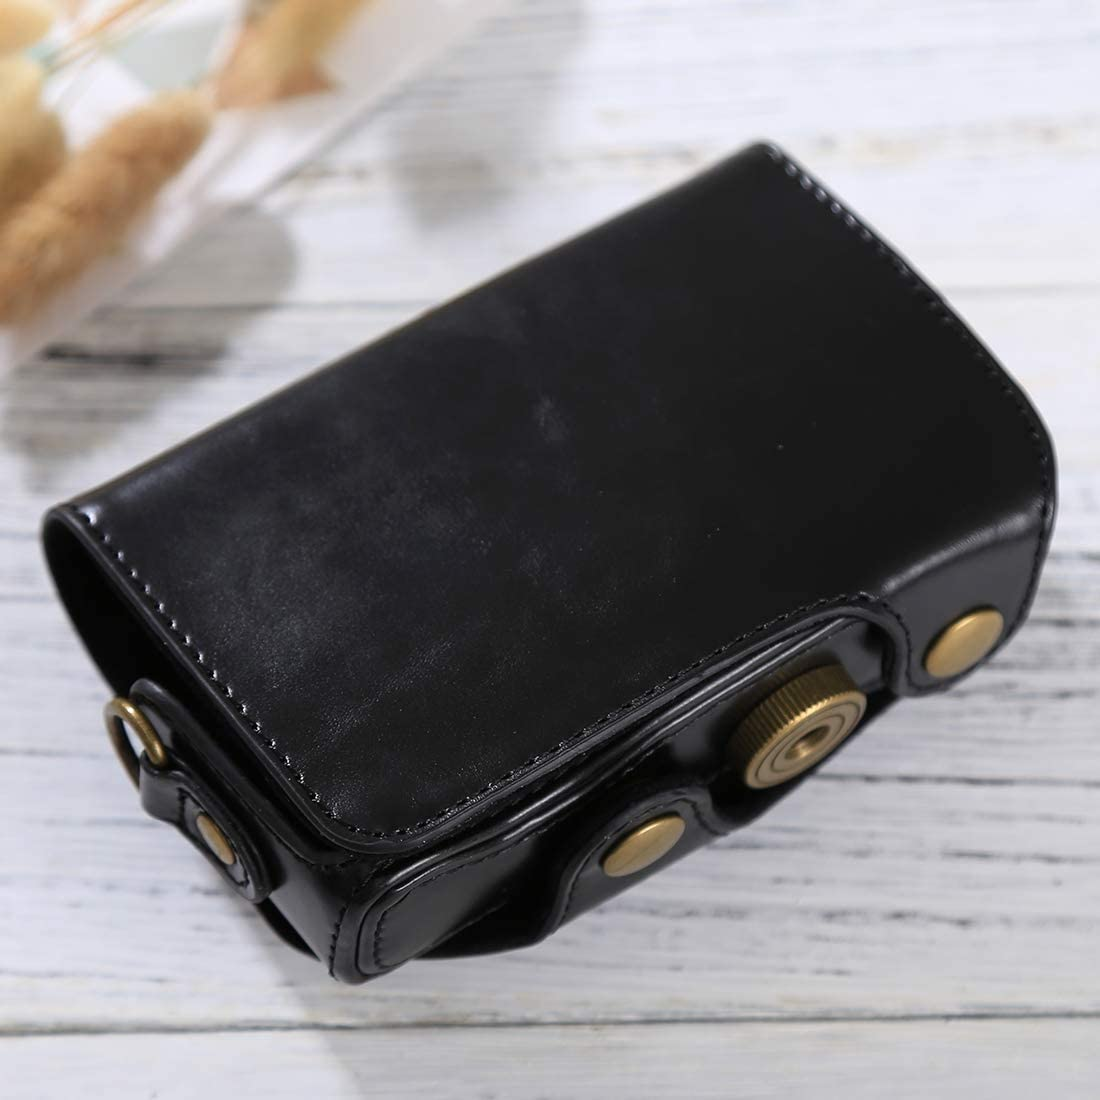 Color : Coffee Black YANTAIANJANE Camera Accessories Full Body Camera PU Leather Case Bag with Strap for Canon PowerShot SX730 HS SX720 HS